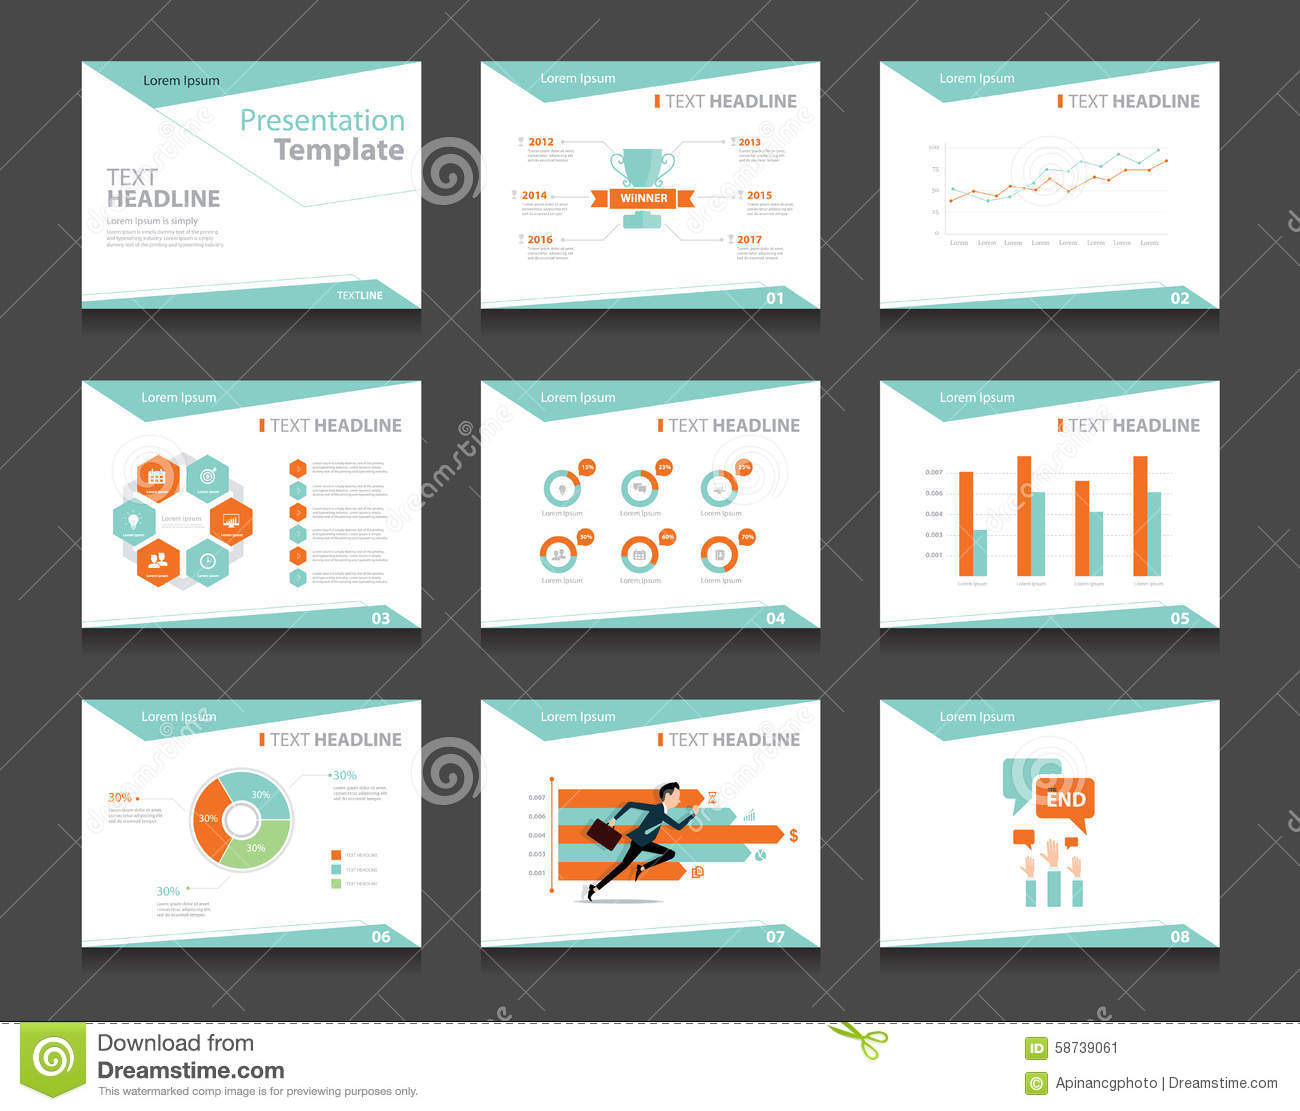 Powerpoint presentation design templates kubreforic powerpoint presentation design templates accmission Images